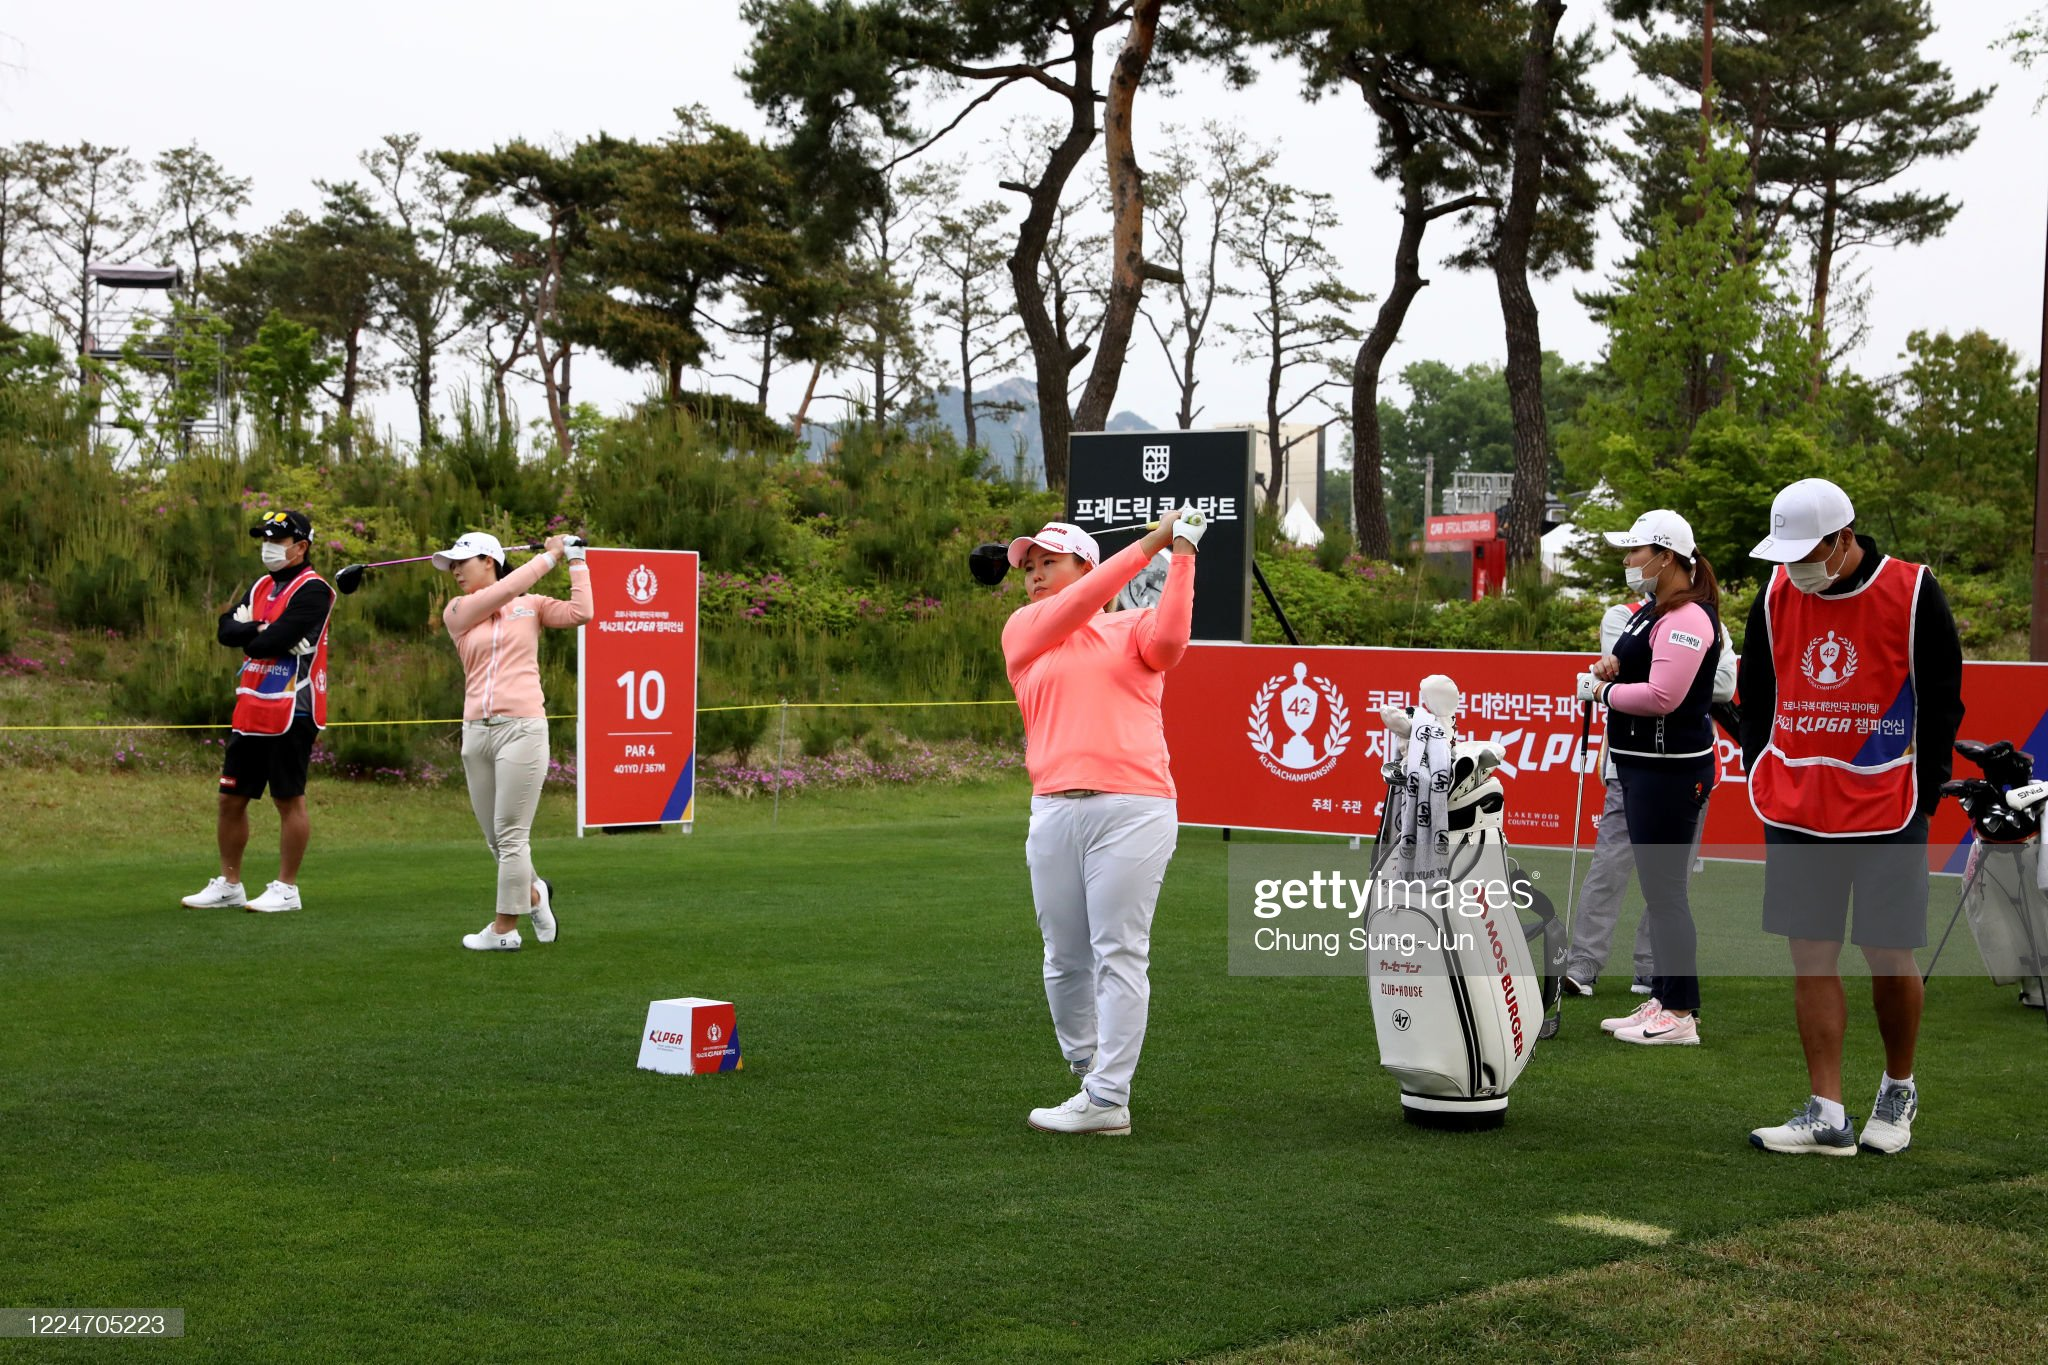 https://media.gettyimages.com/photos/sunju-ahn-of-south-korea-prepare-for-tee-shot-on-the-10th-hole-during-picture-id1224705223?s=2048x2048